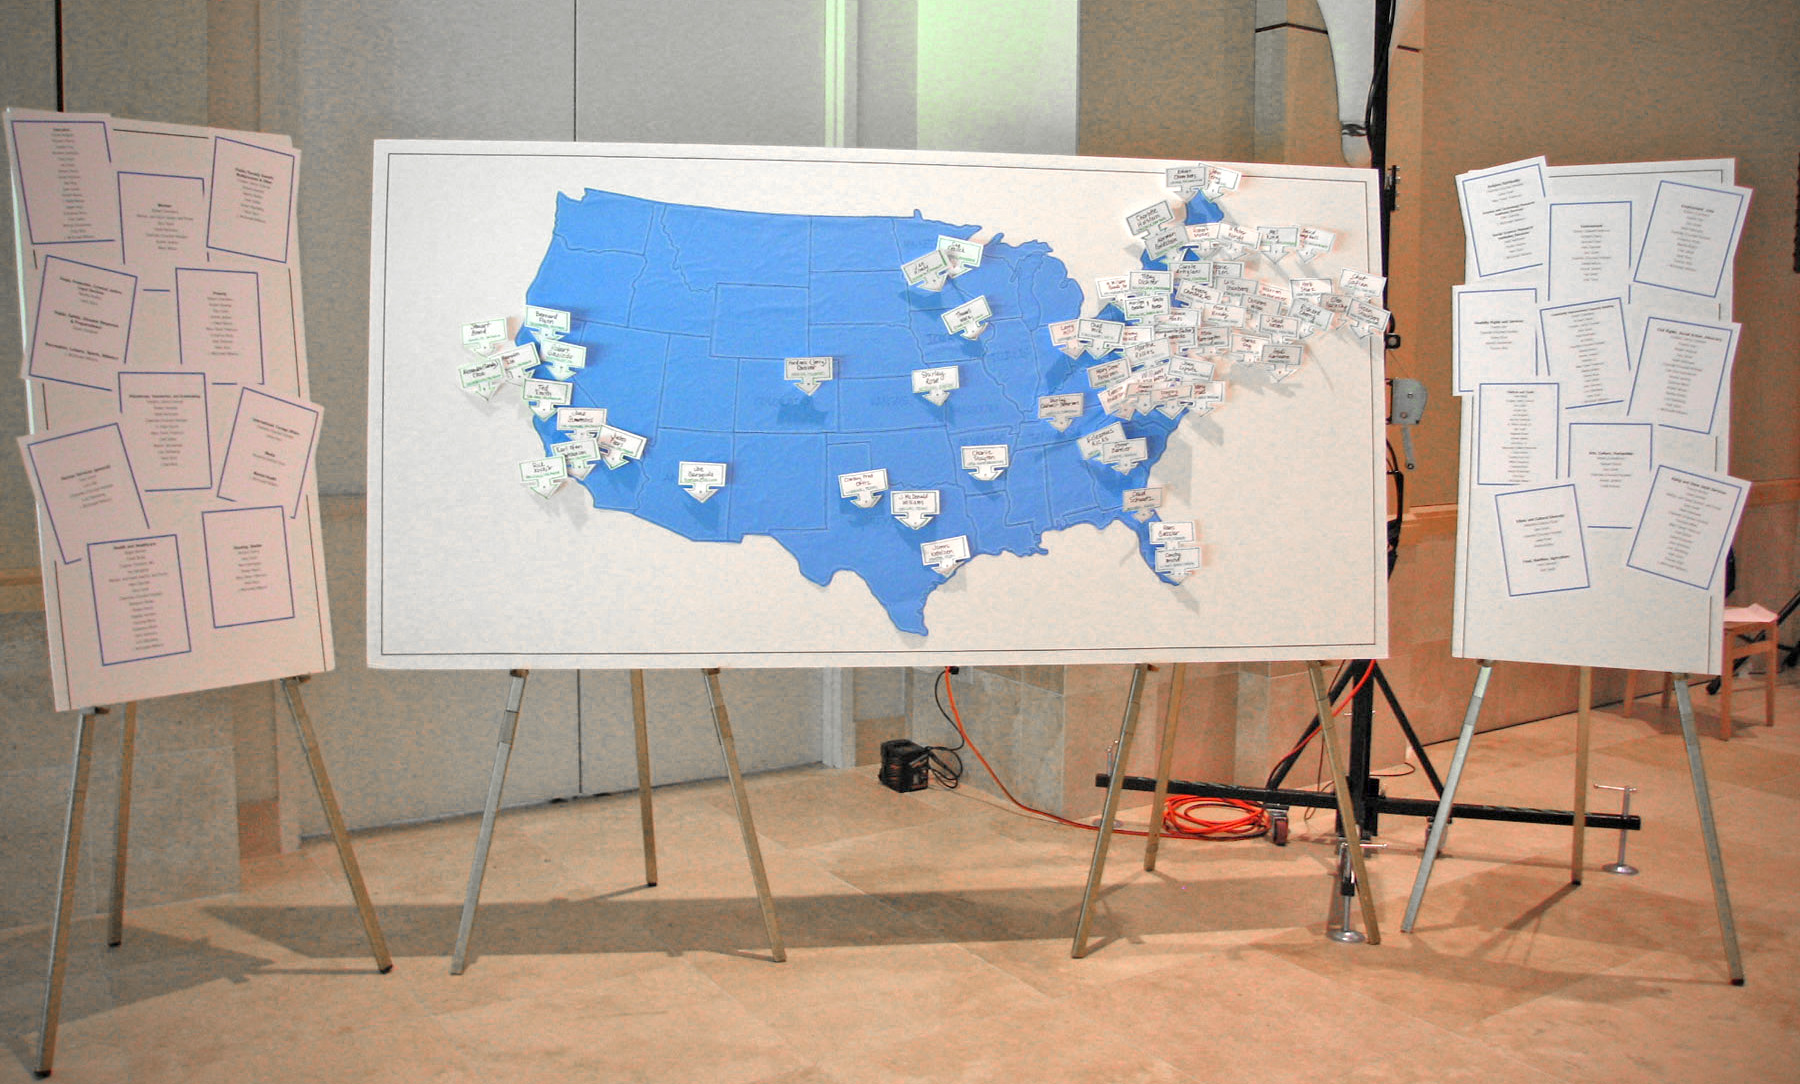 """This large-scale map was created for """"The Purpose Prize"""" and enabled participants to easily locate and connect with others from their region."""